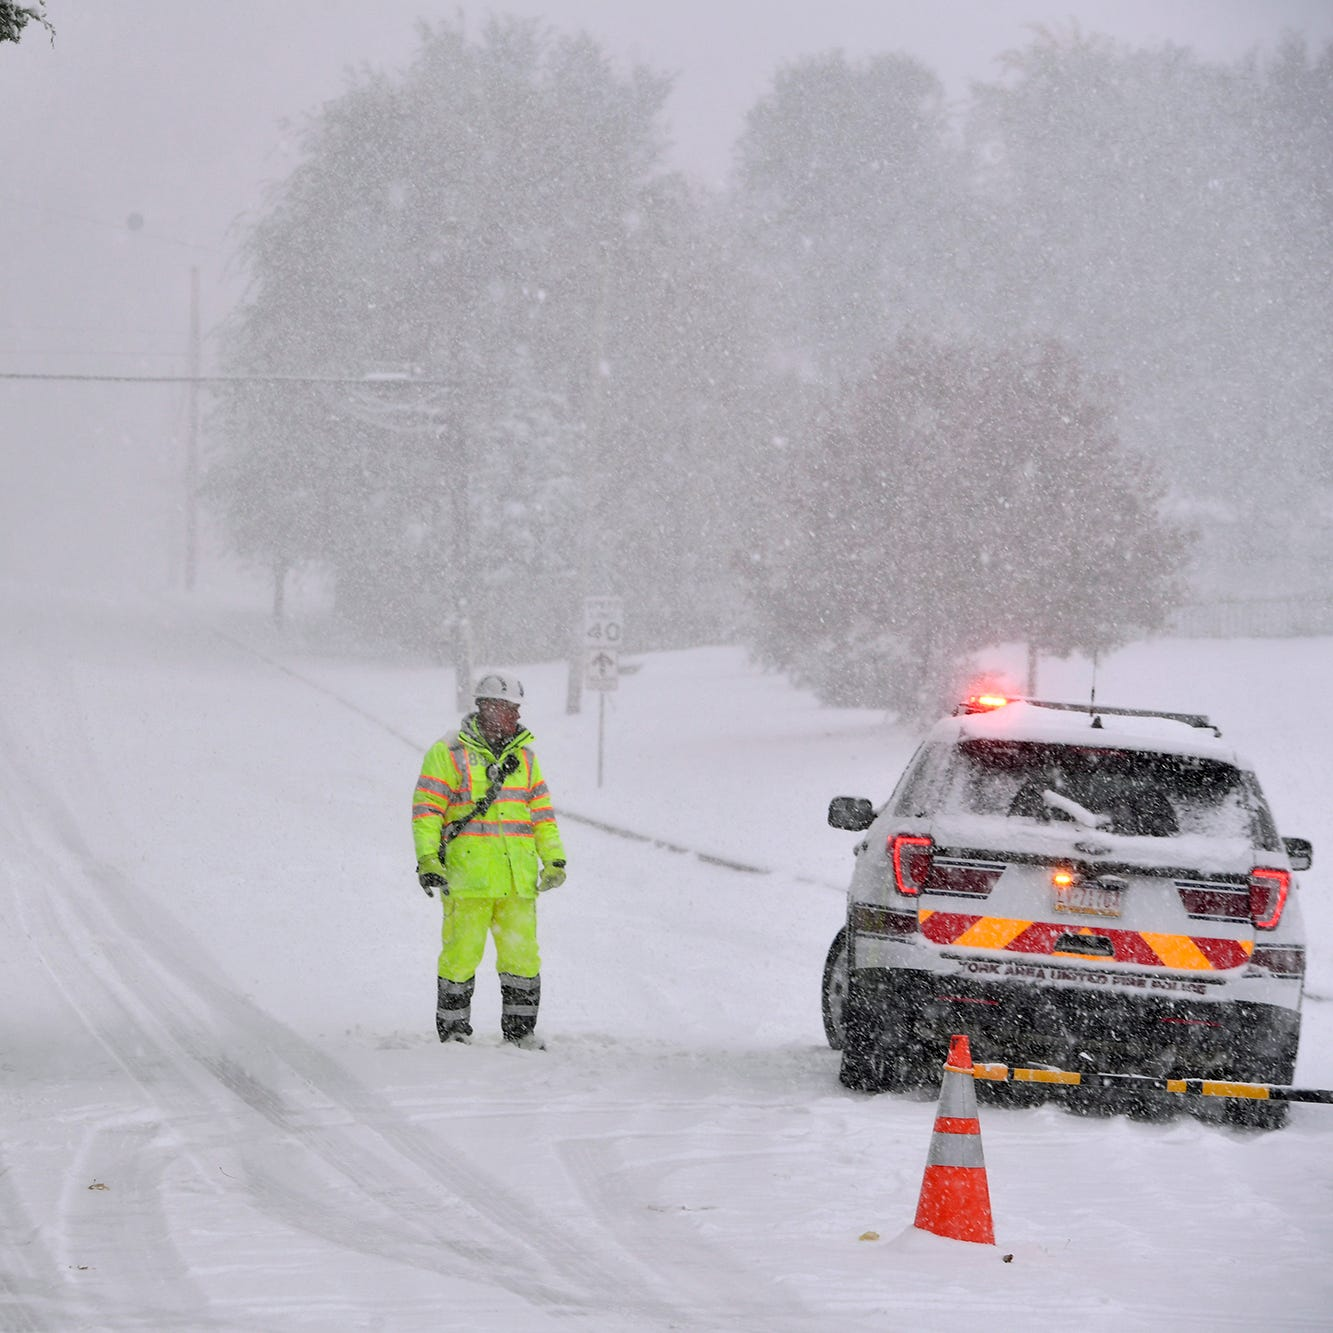 Updated winter storm warning: 3 to 6 inches of snow predicted for York County